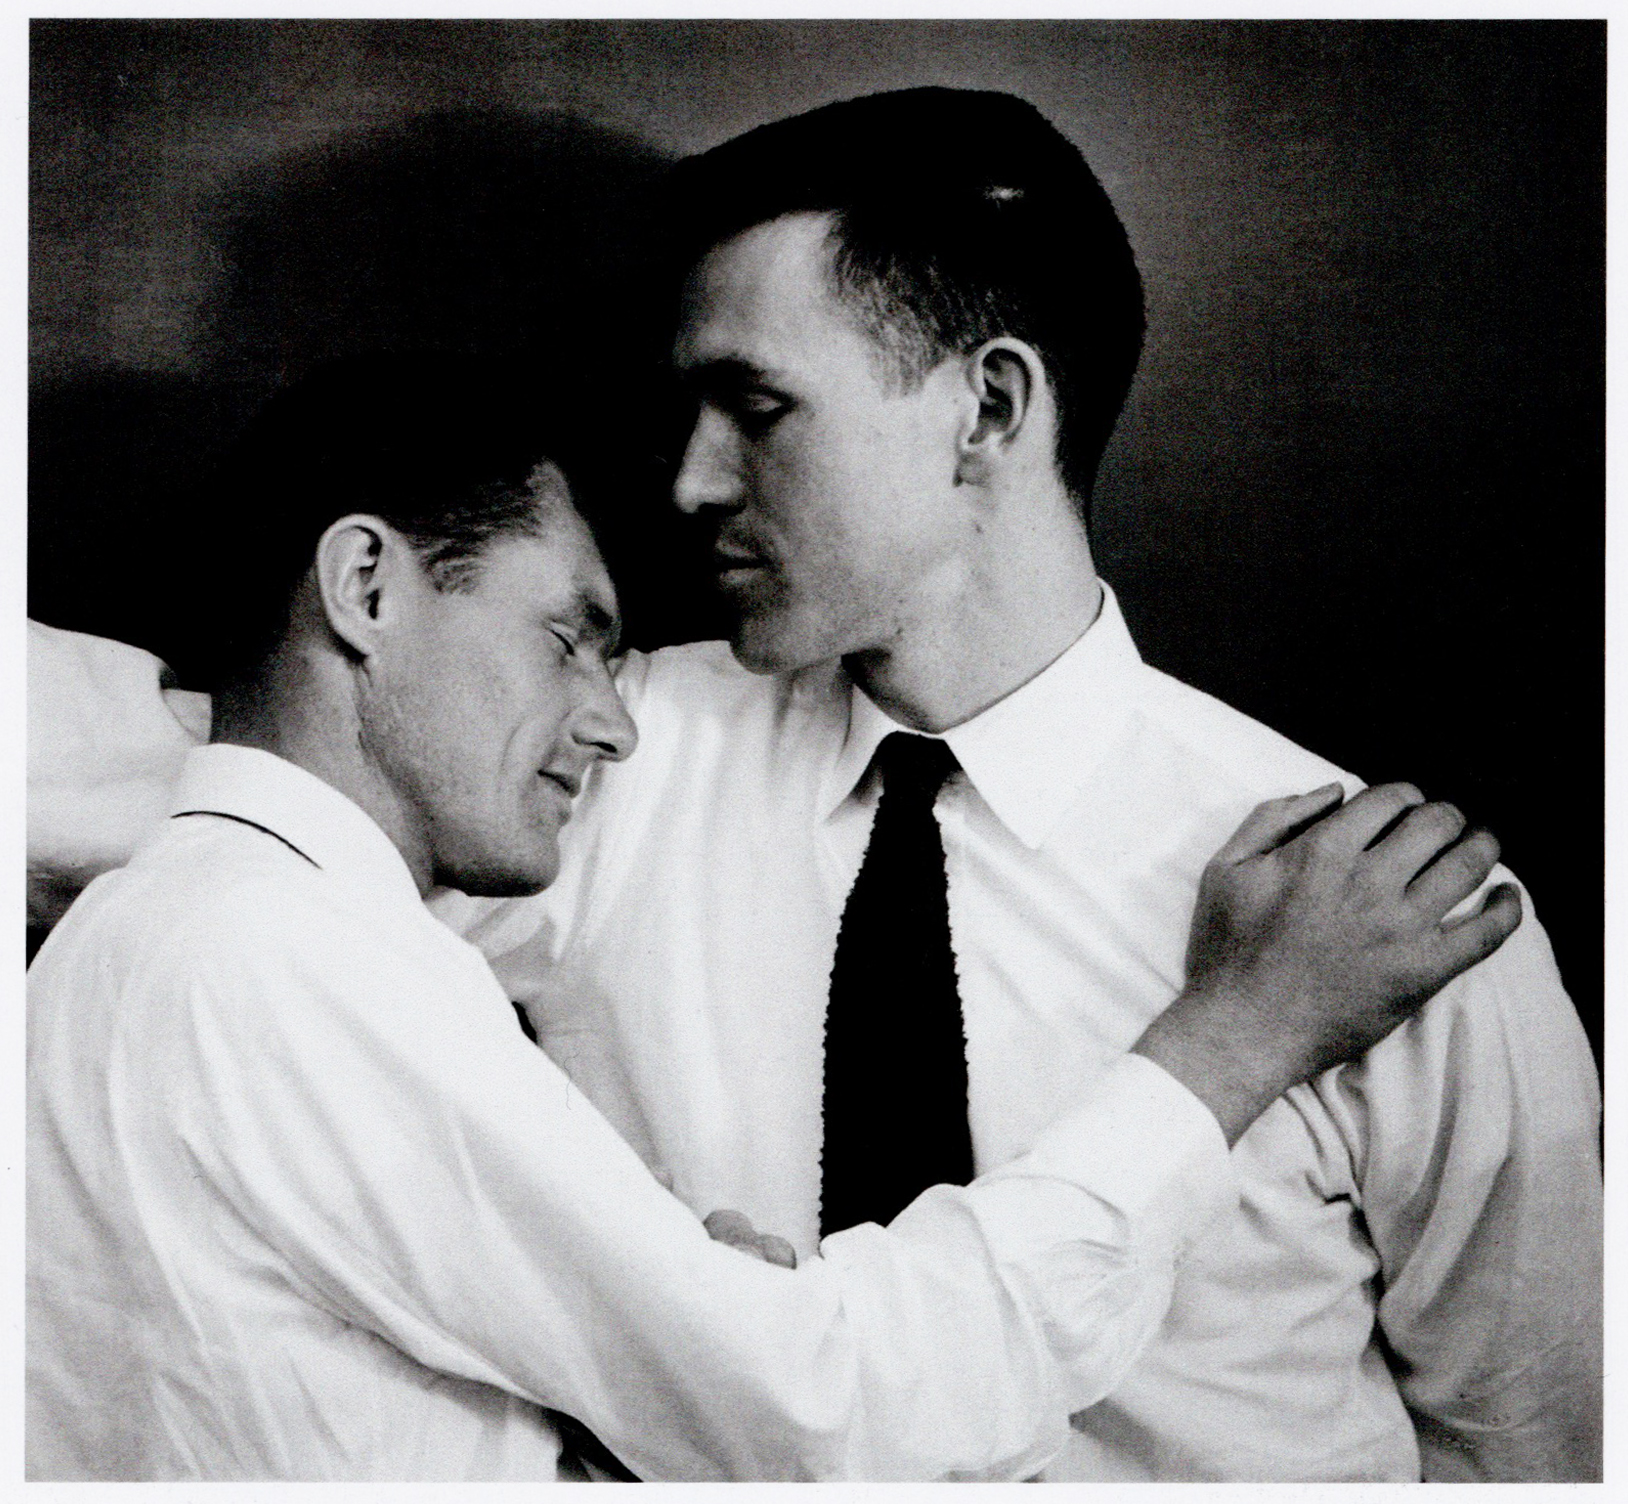 1949, Ernest Stone and Robert Bright - photograph by Minor White